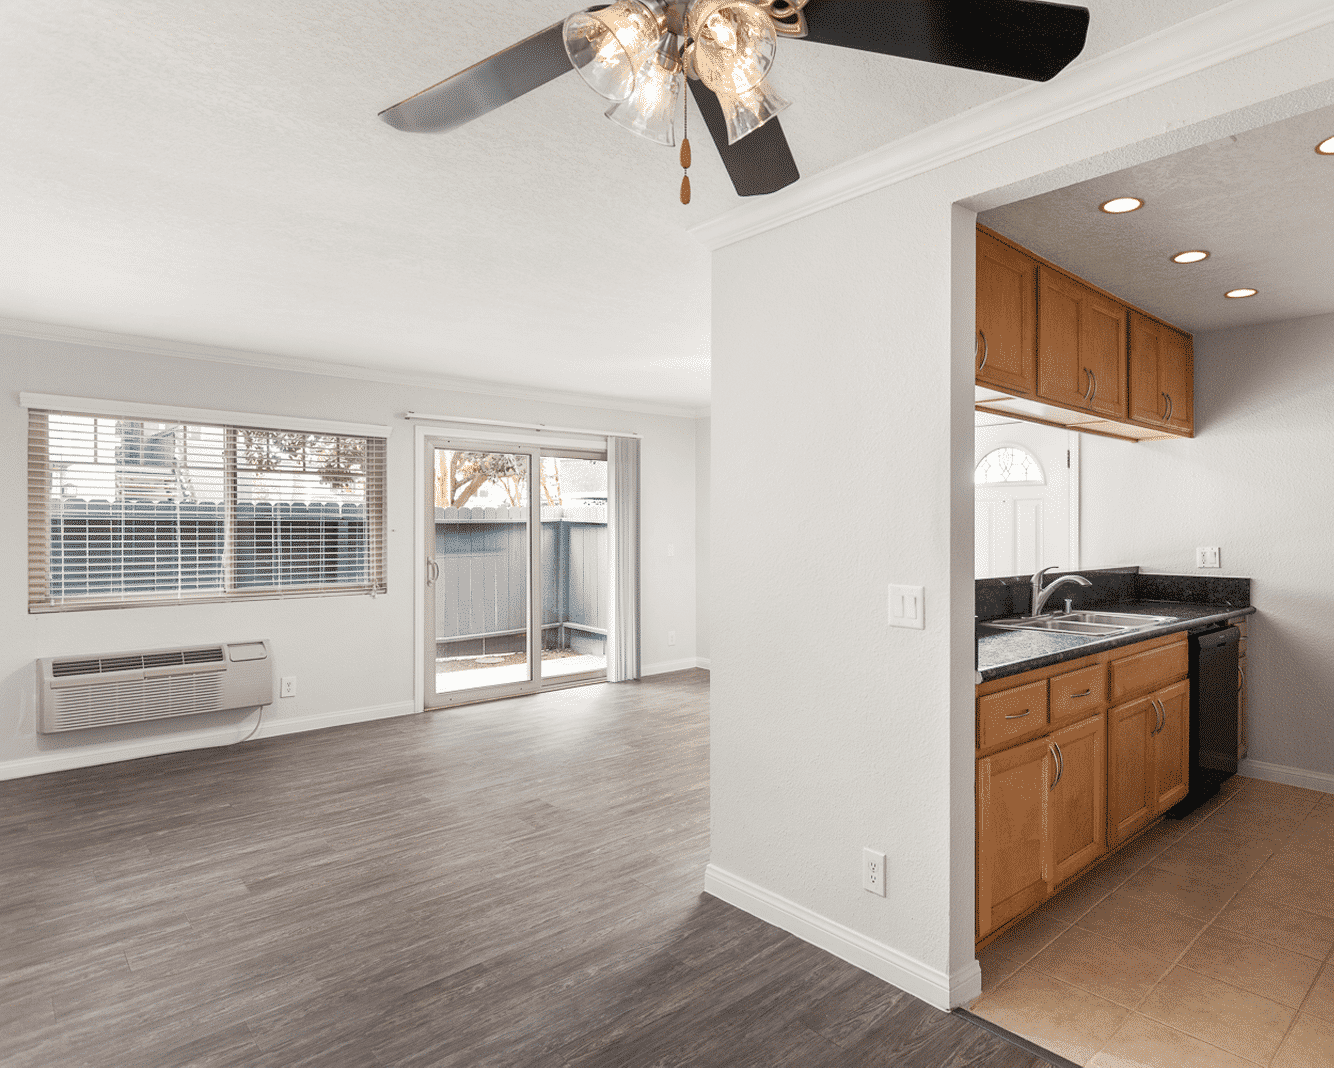 Empty living room with ceiling fan and AC unit and kitchen